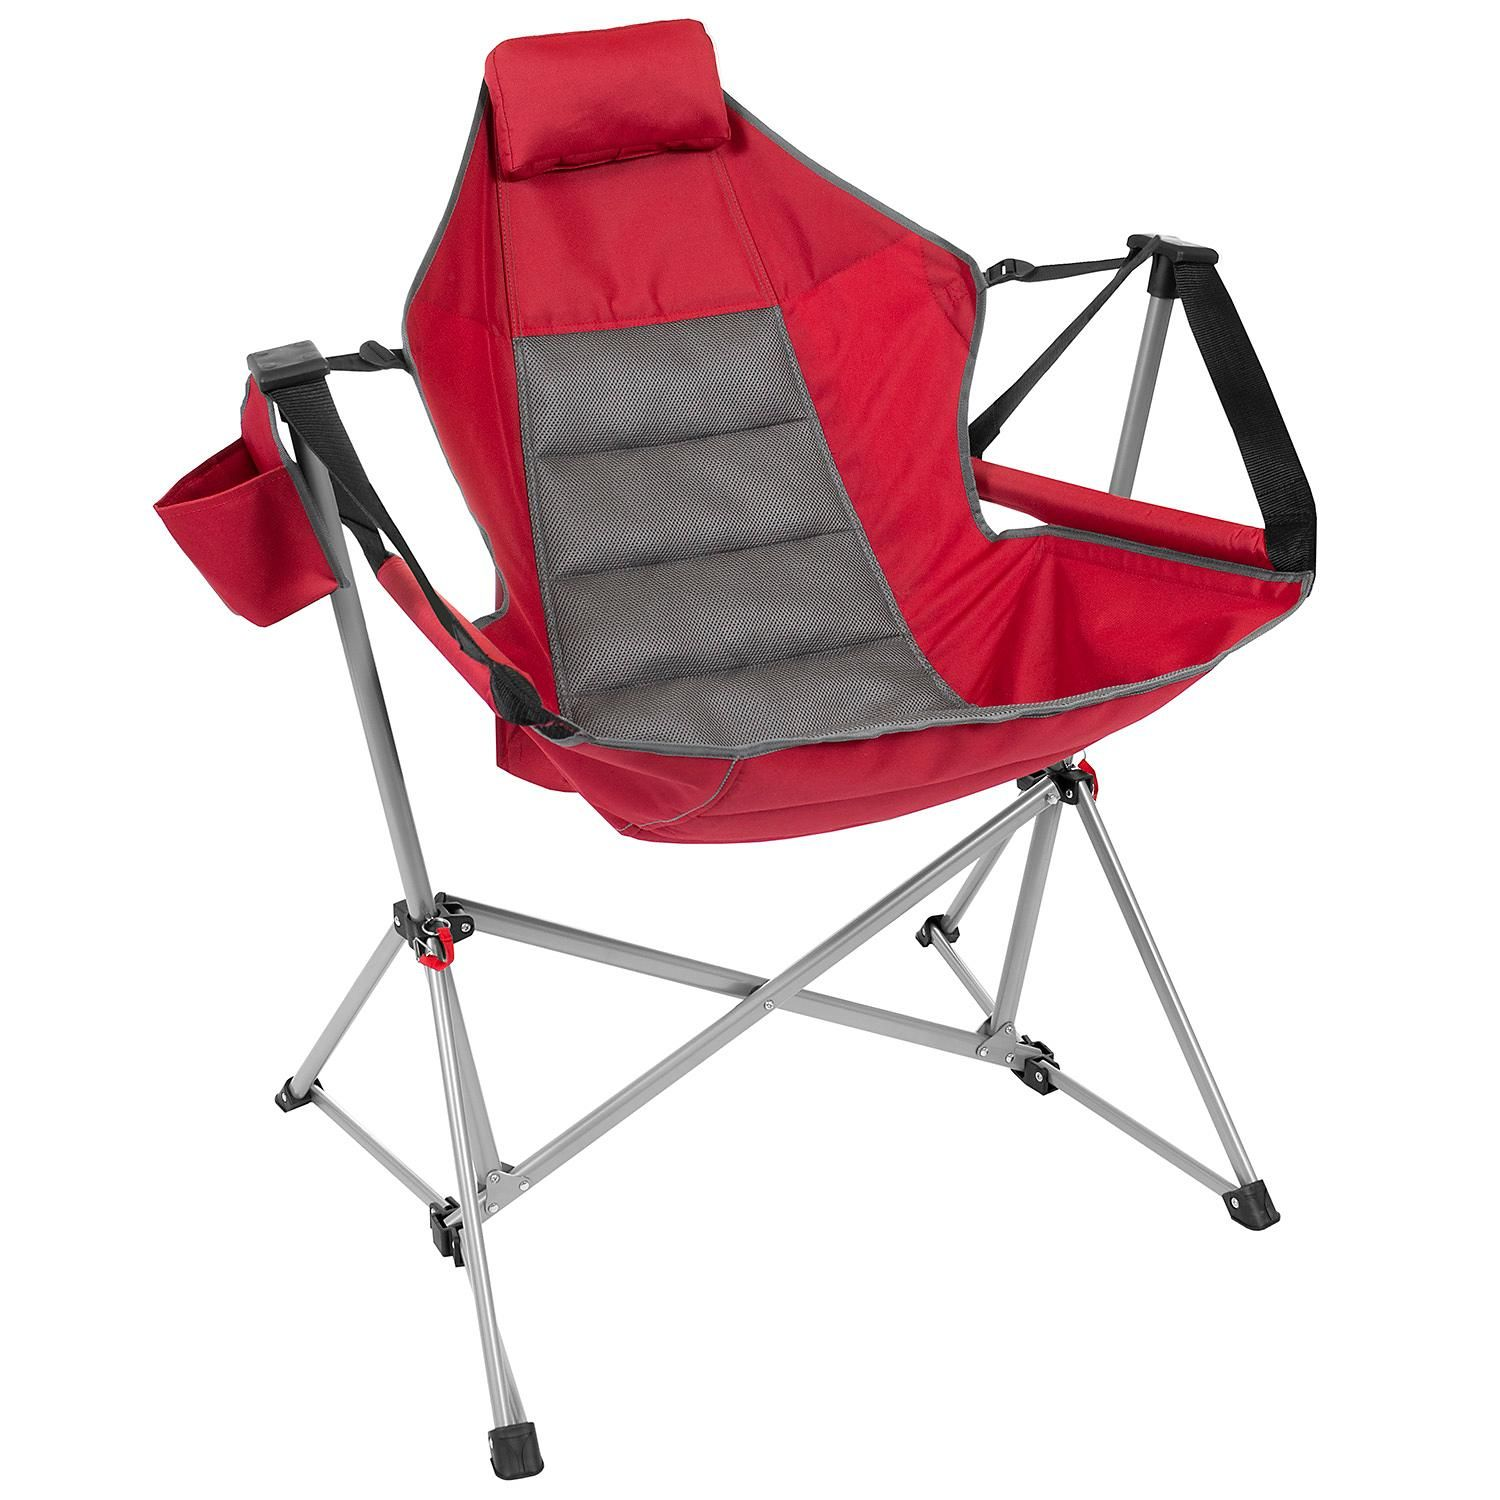 Member's Mark Swing Chair Lounger Sam's Club in 2020